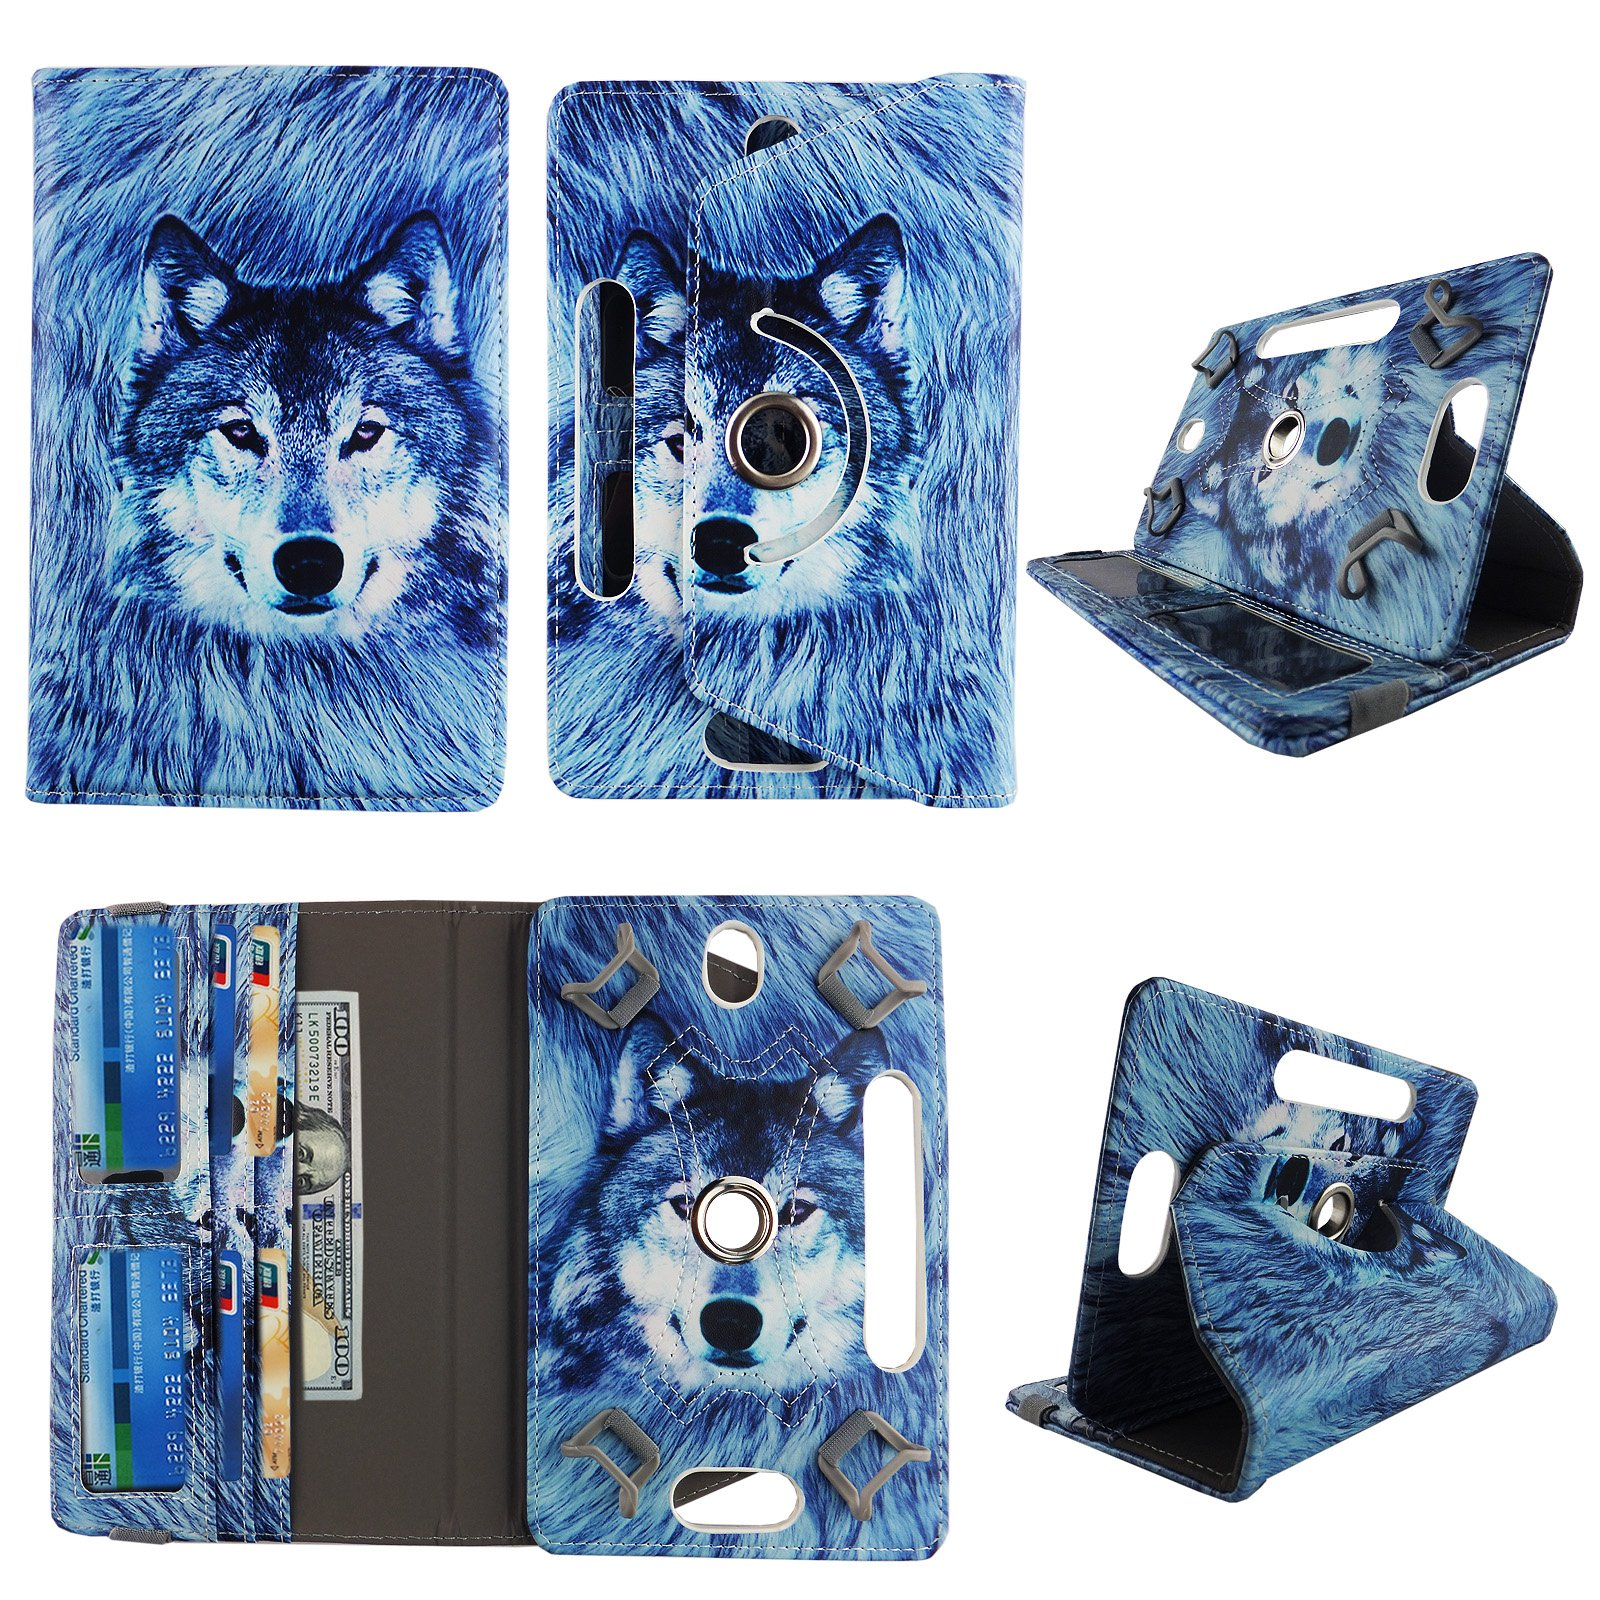 Snow Wolf tablet case 10 inch for Digiland 10.1 10'' 10 inch android tablet cases 360 rotating slim folio stand protector pu leather cover travel e-reader cash slots